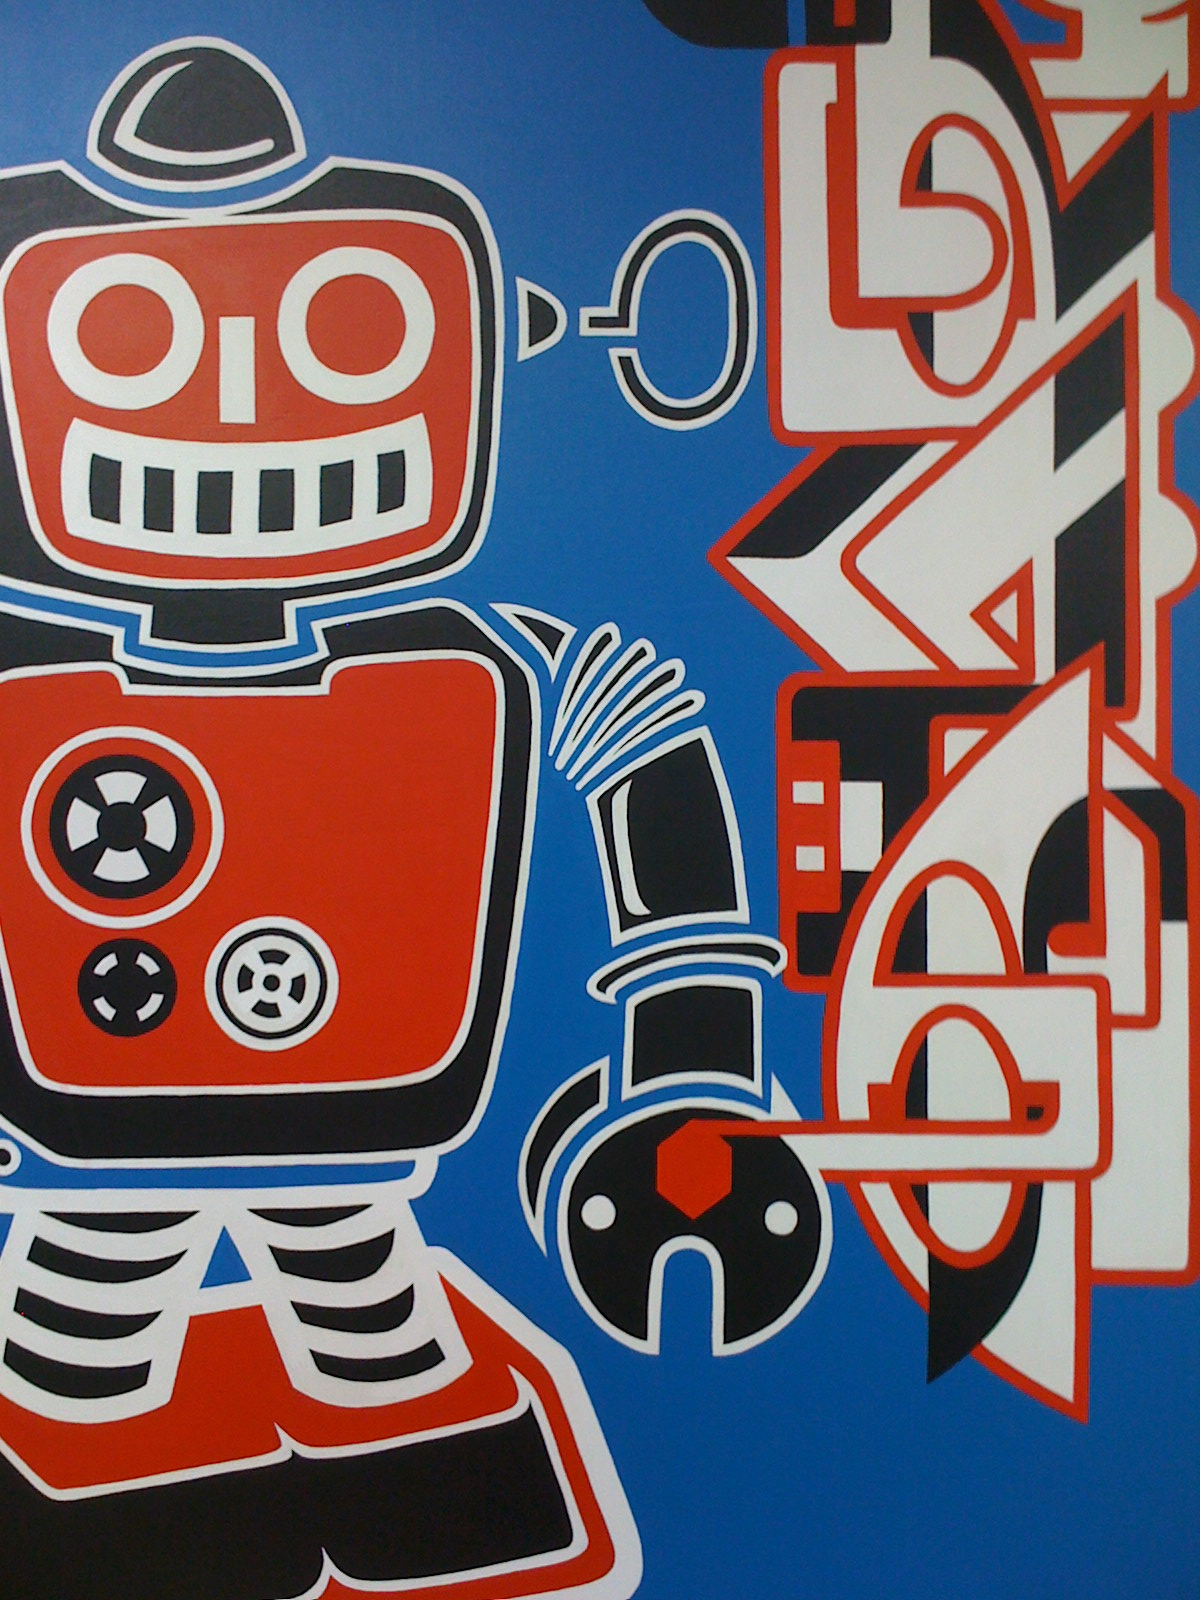 Robot series - Sign of the times